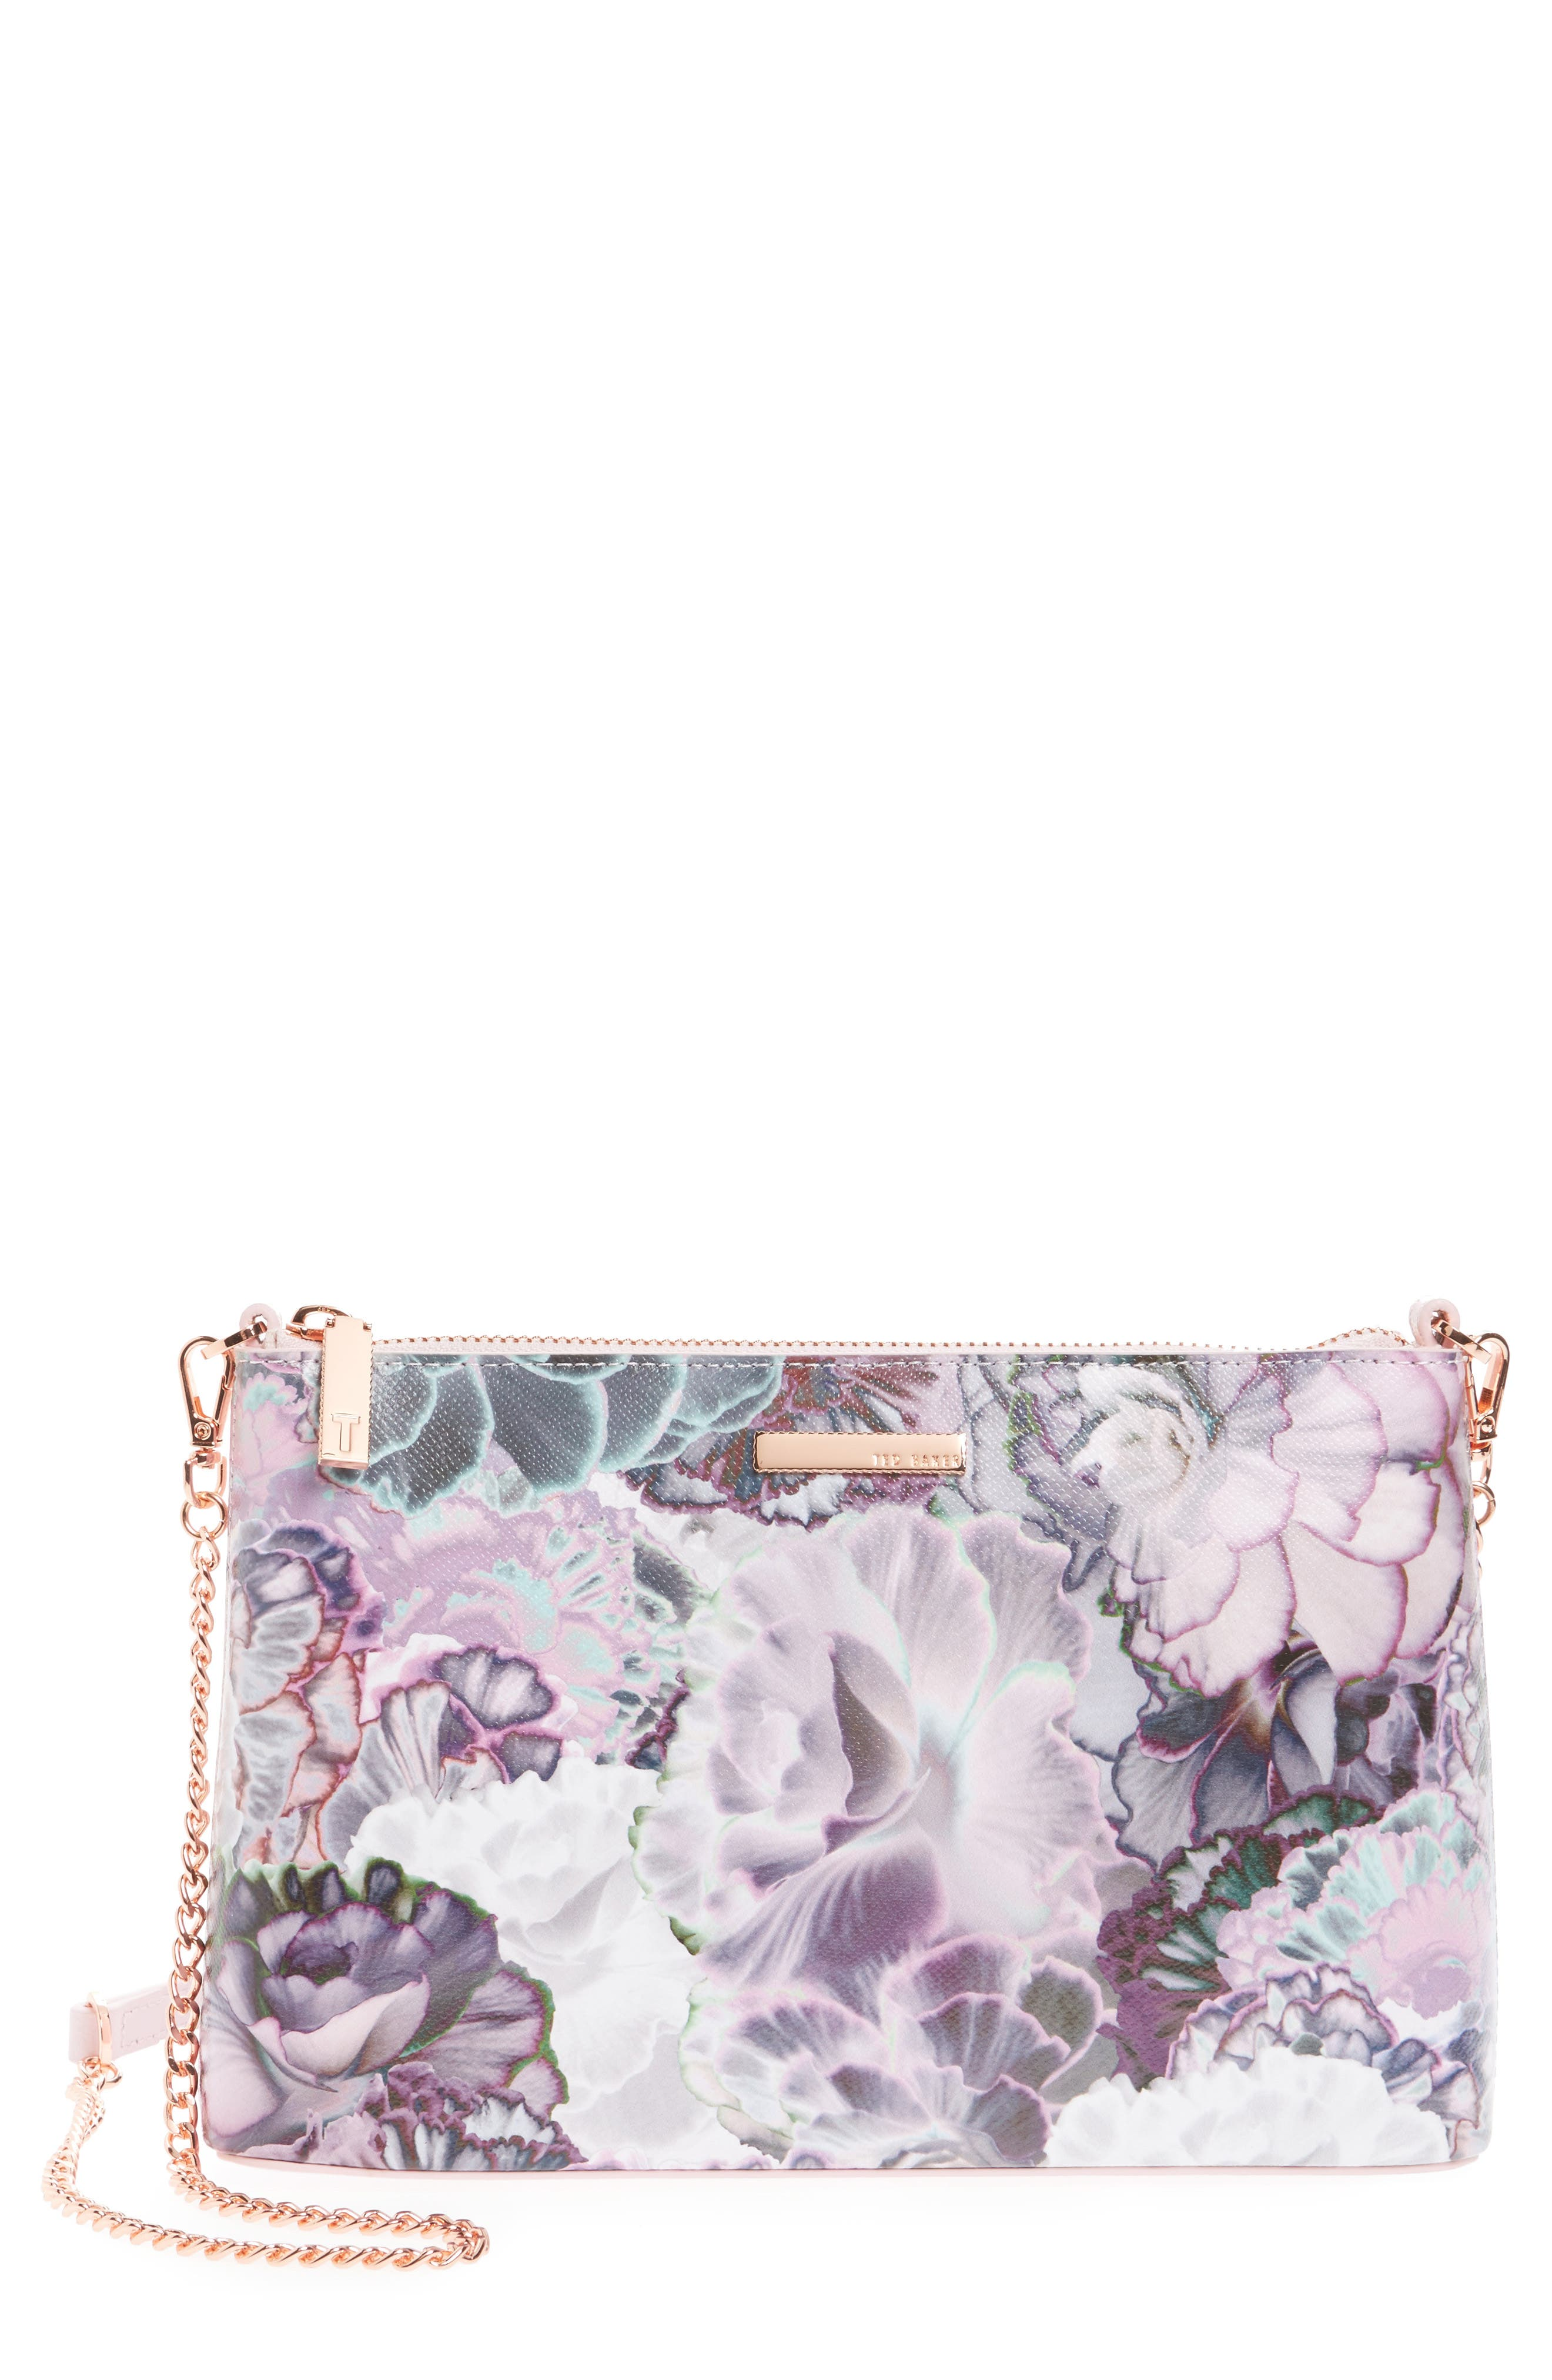 Illuminated Bloom Leather Crossbody Bag,                         Main,                         color,